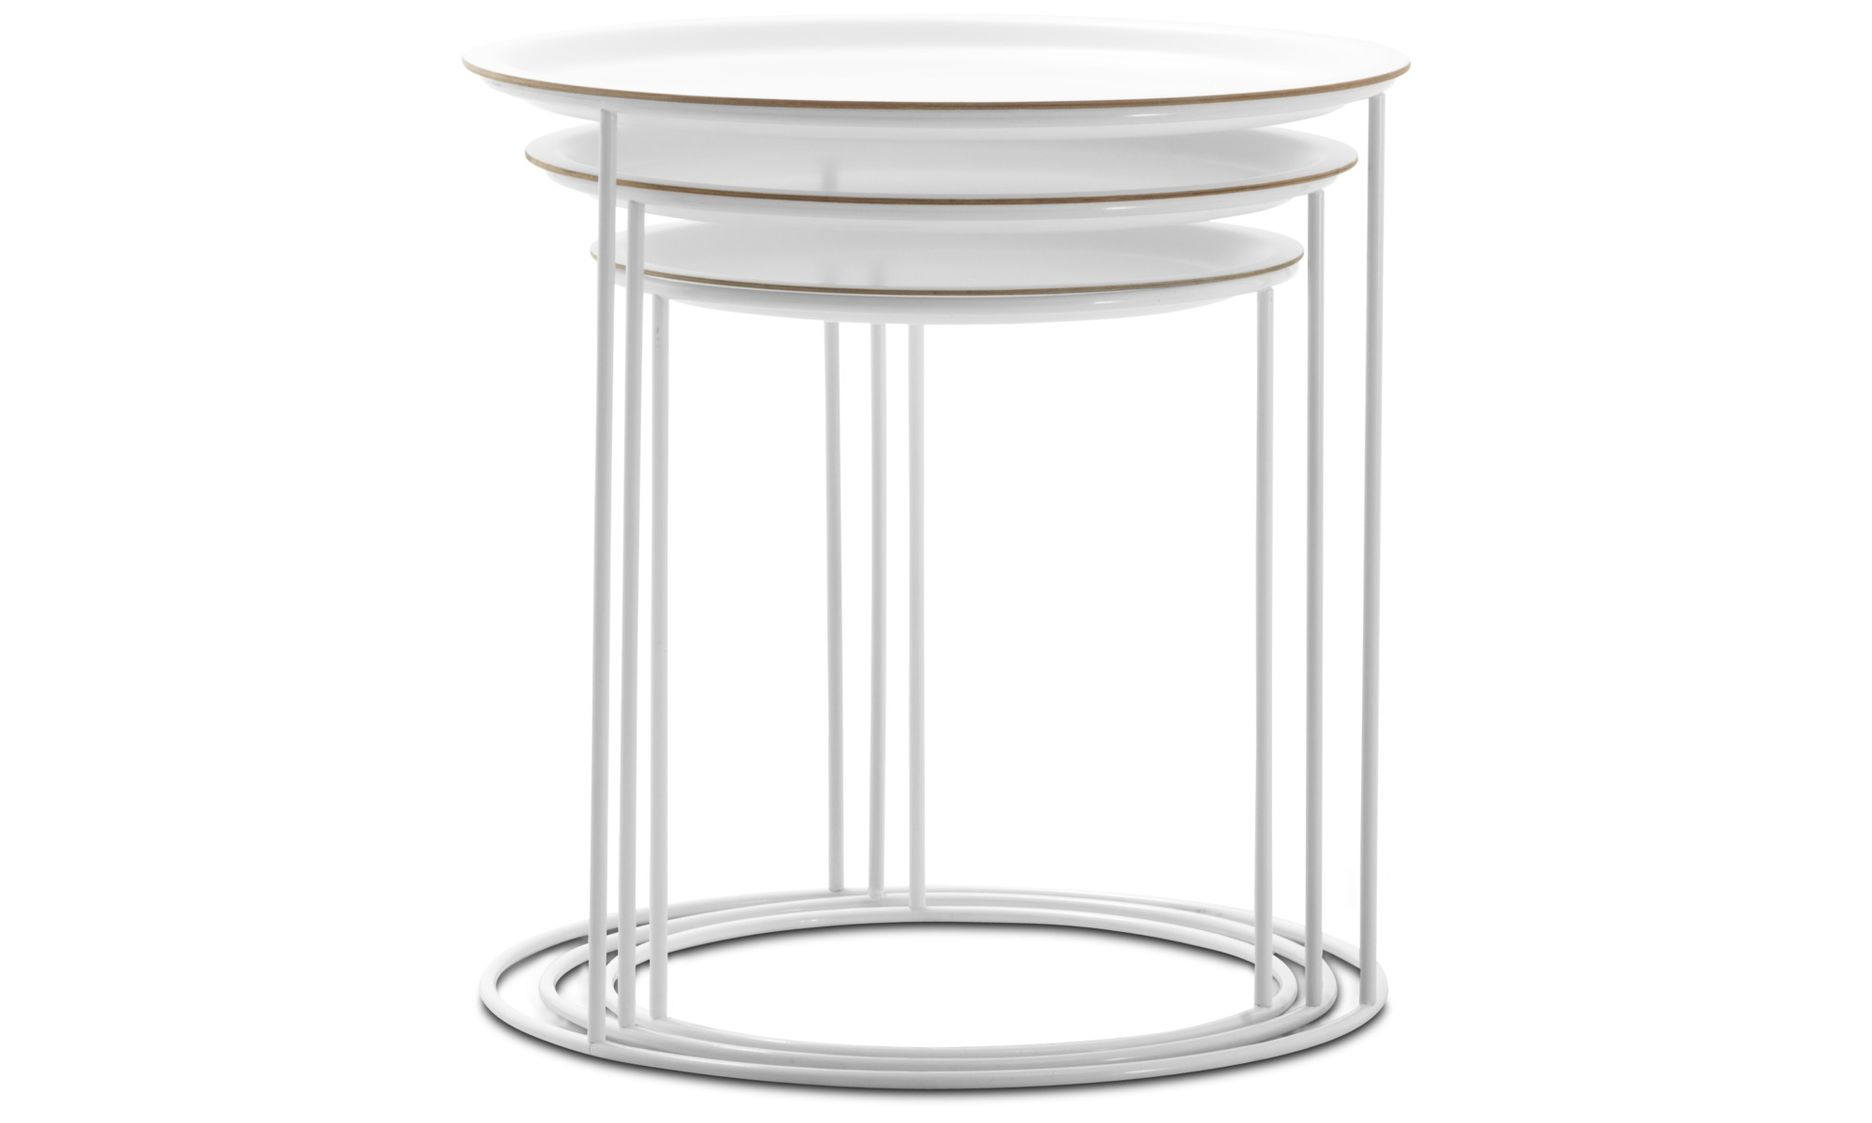 Side table by BoConcept